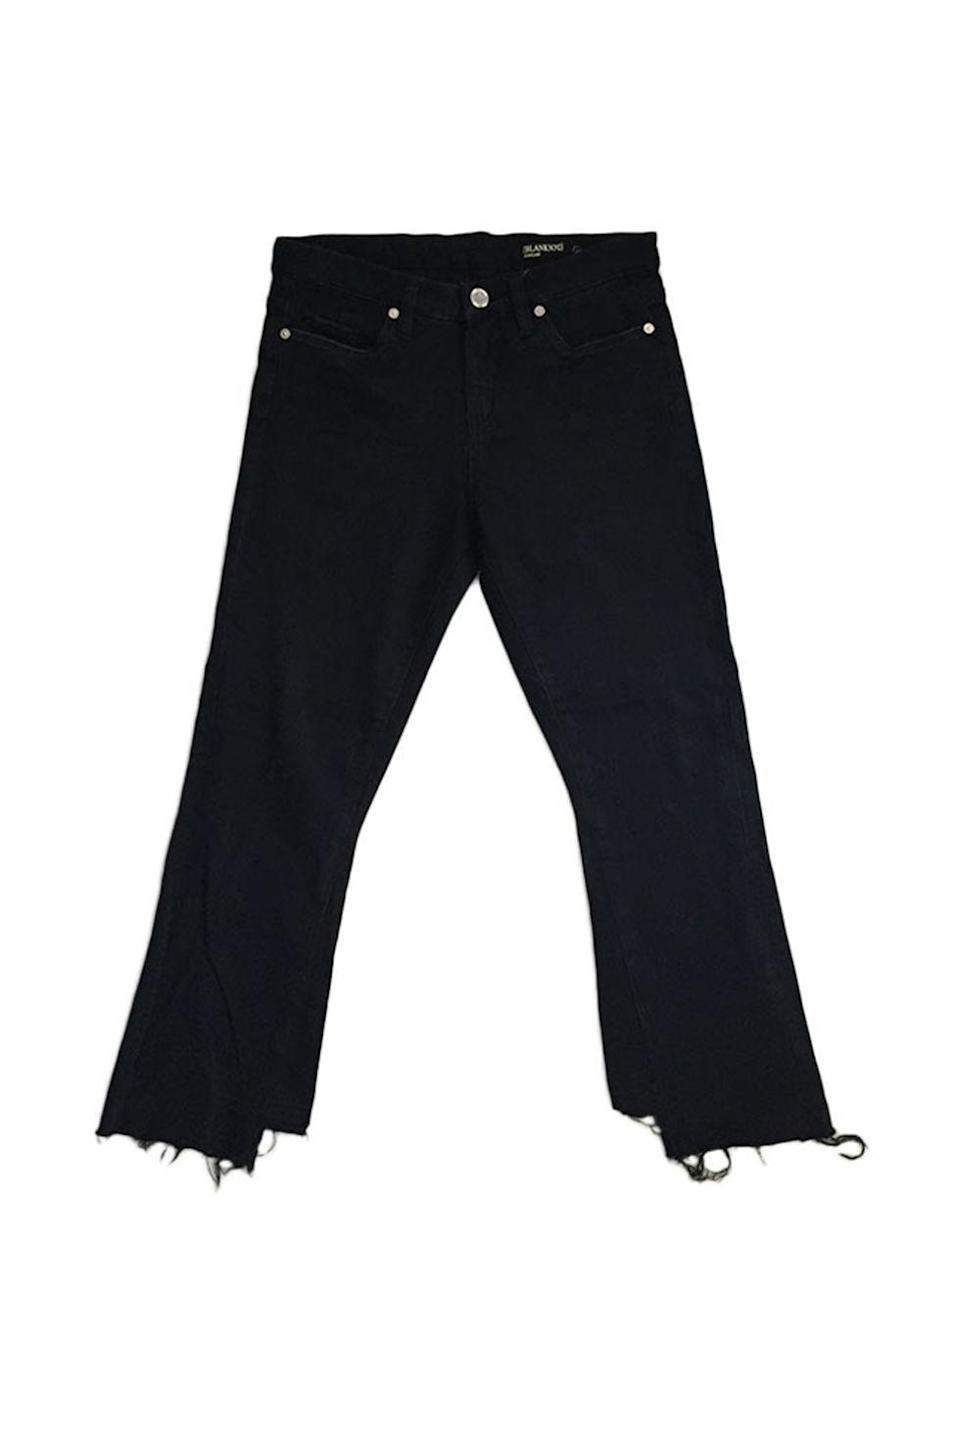 """<p>Kick flares are to your ankles as twirly skirts are to your body as a whole. </p><p><strong>BUY IT:</strong> Blank NYC, $88; <a href=""""http://www.blanknyc.com/store/women/womens-jeans/womens-flare-jeans/cropped-flare/denim-37.html?color=back-to-basics"""" rel=""""nofollow noopener"""" target=""""_blank"""" data-ylk=""""slk:blanknyc.com"""" class=""""link rapid-noclick-resp"""">blanknyc.com</a>.</p>"""